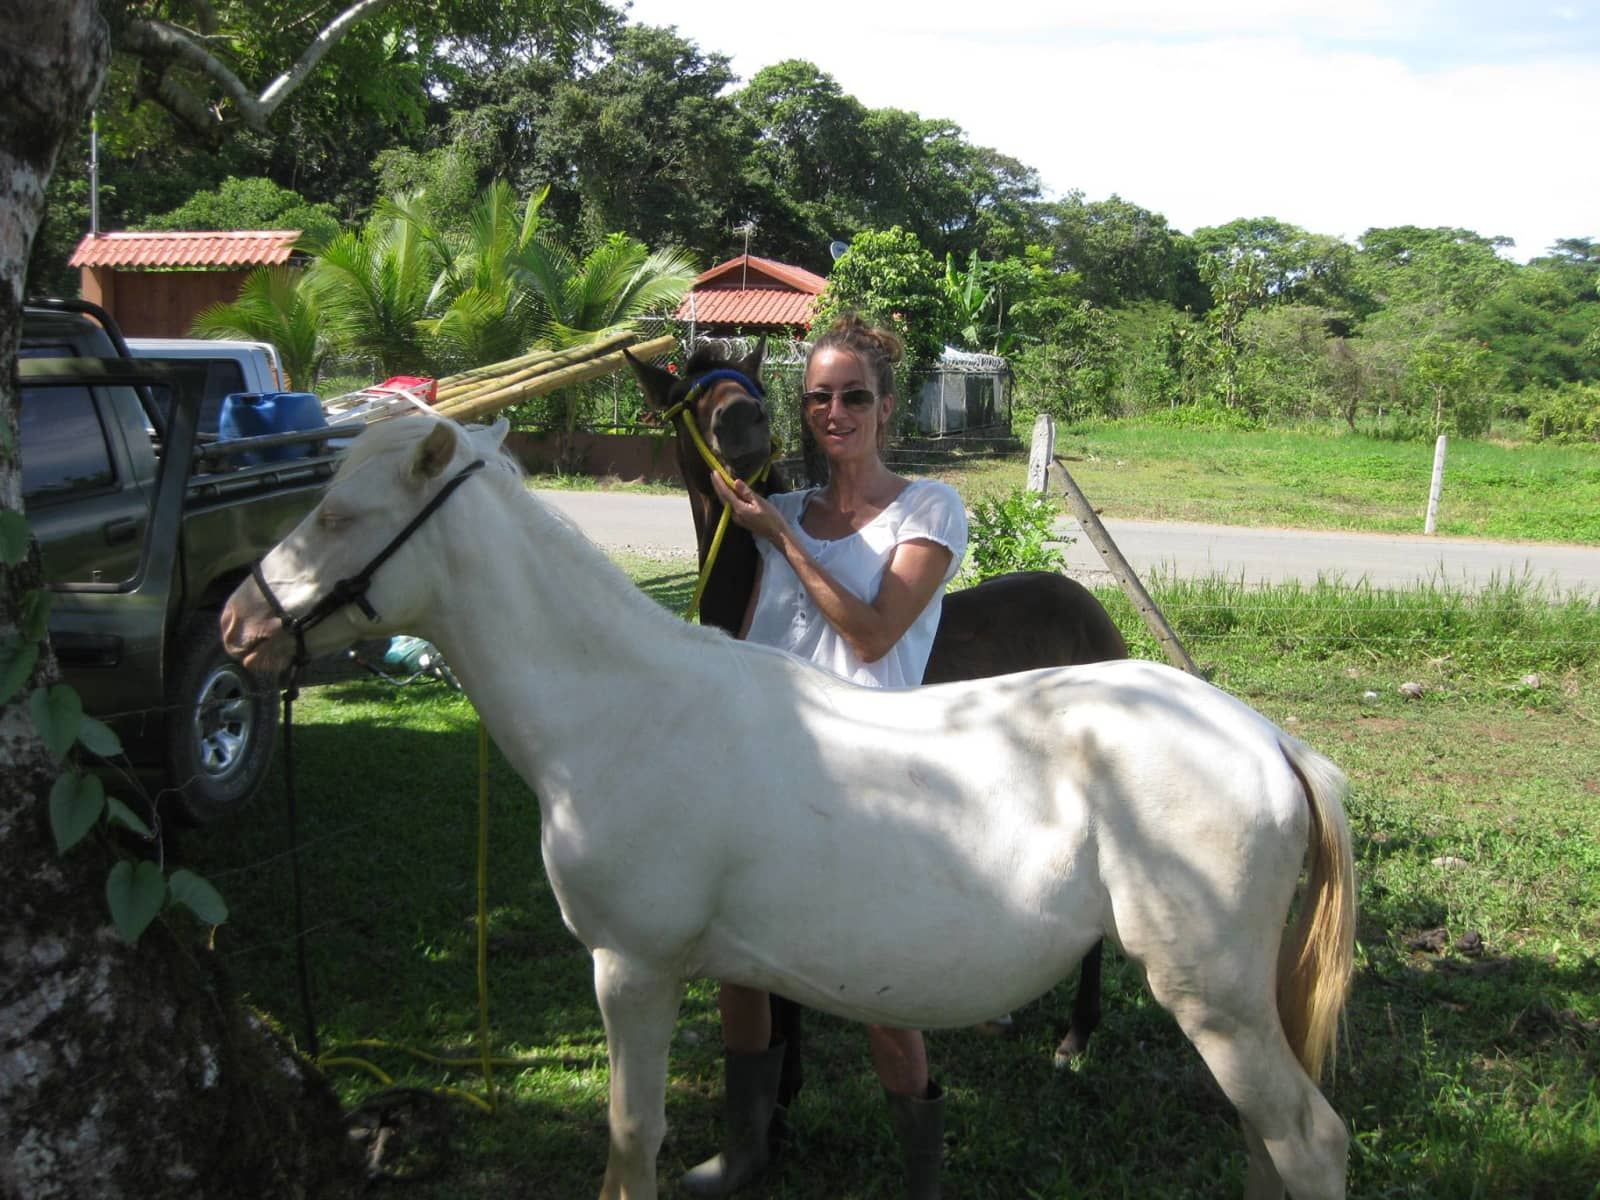 Leslie from Limón, Costa Rica